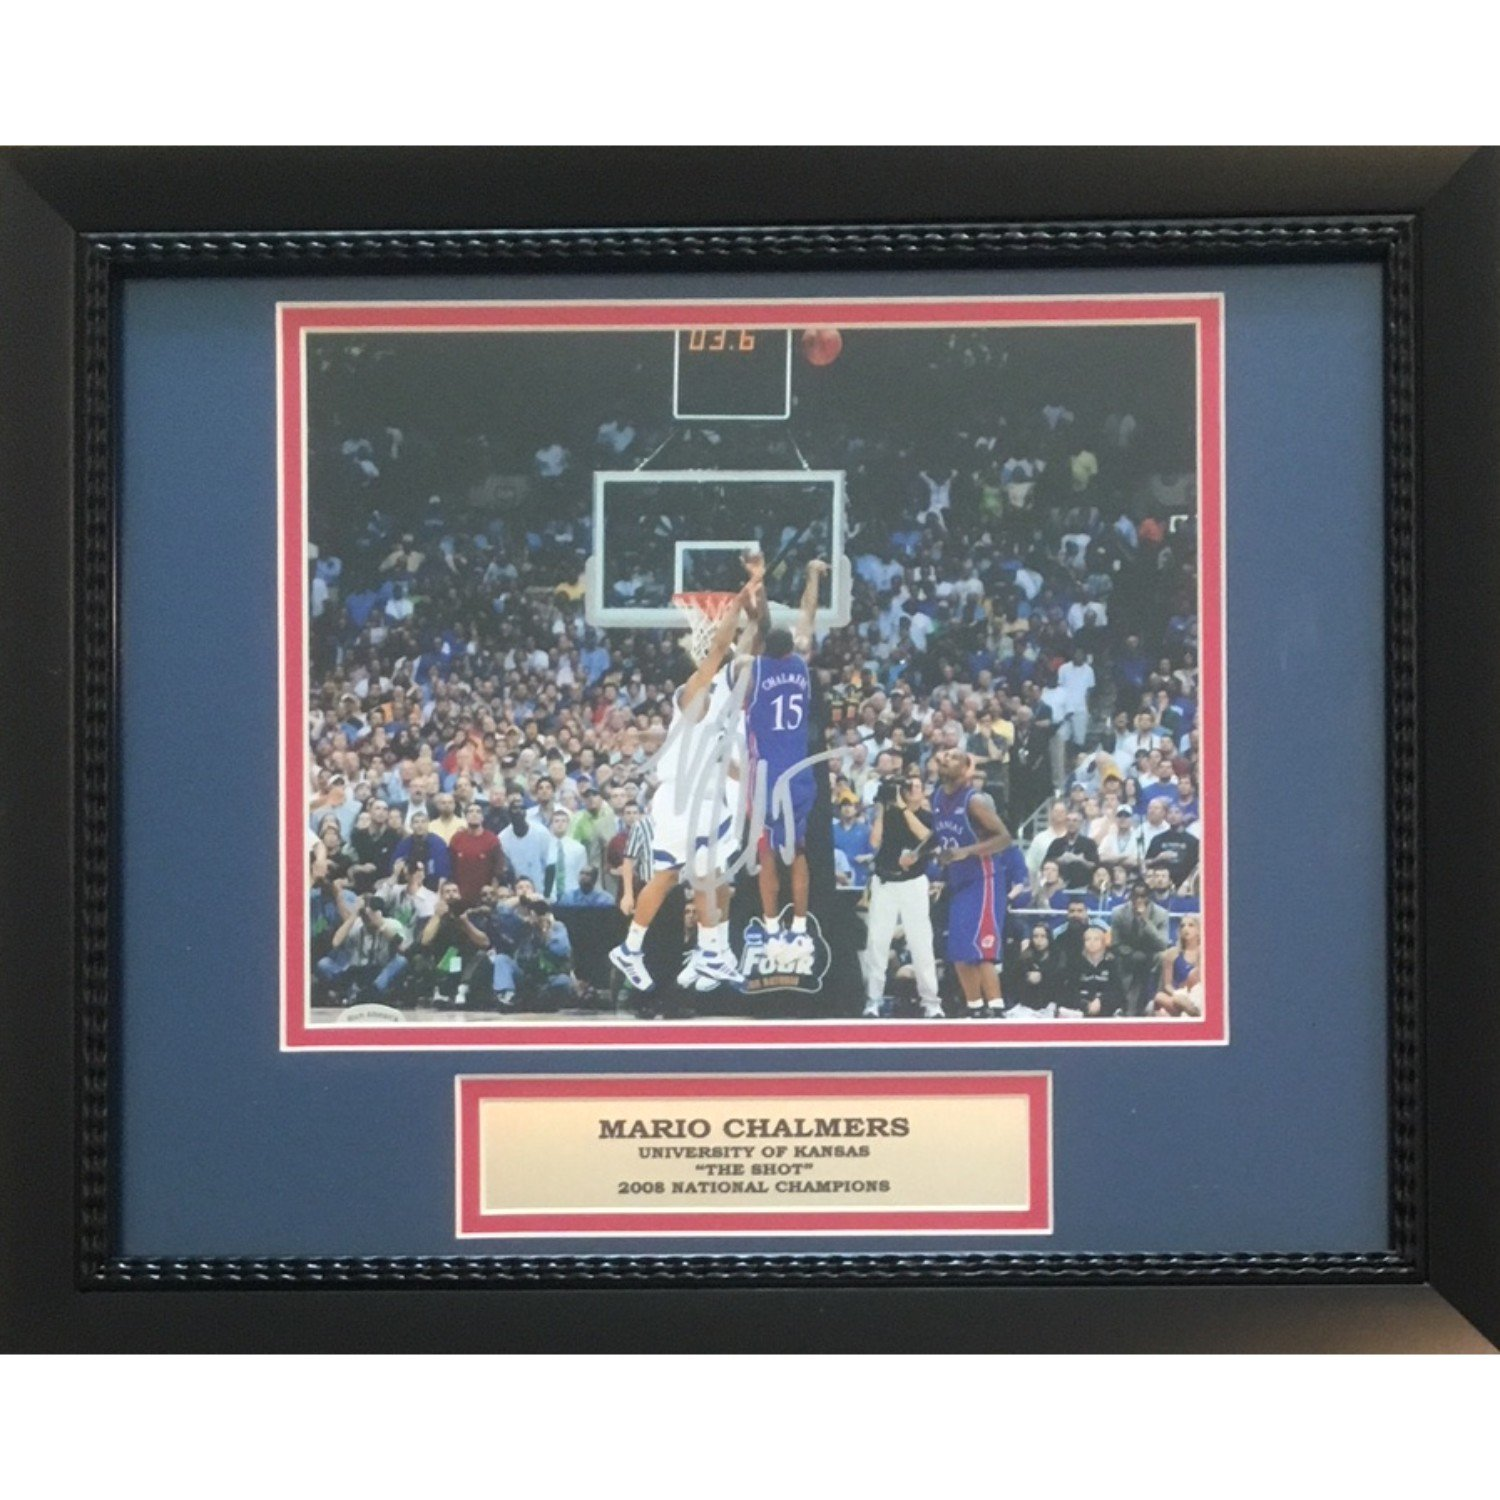 Mario Chalmers Autographed Kansas Jayhawks THE SHOT Signed Framed 8x10 Basketball Photo Powers Collectibles